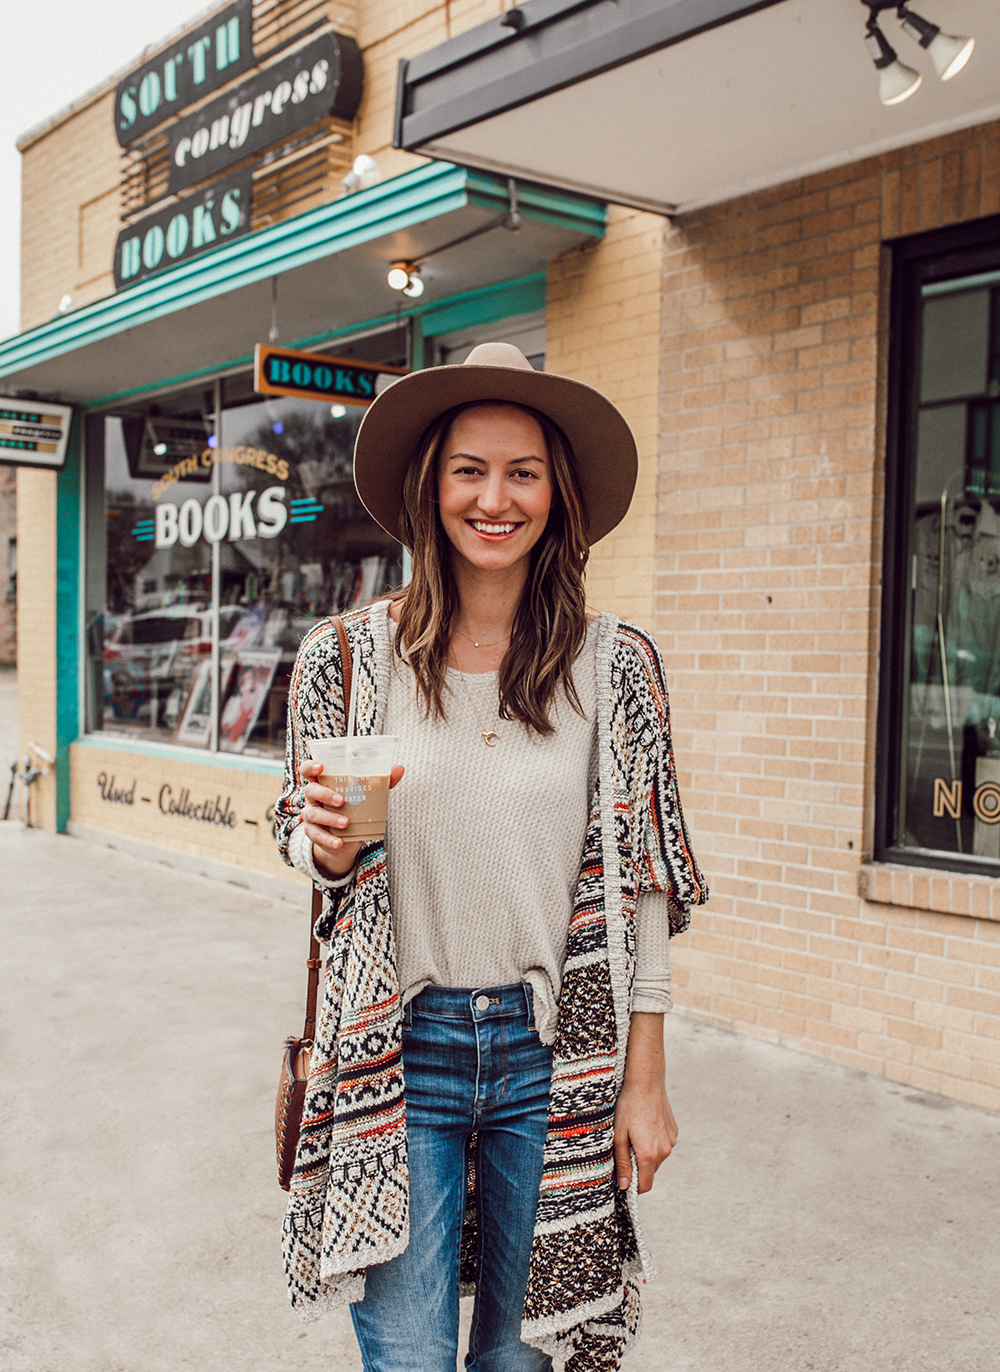 livvyland-blog-olivia-watson-austin-texas-fashion-style-blogger-south-congress-avenue-sole-society-taupe-clogs-boho-outfit-idea-3